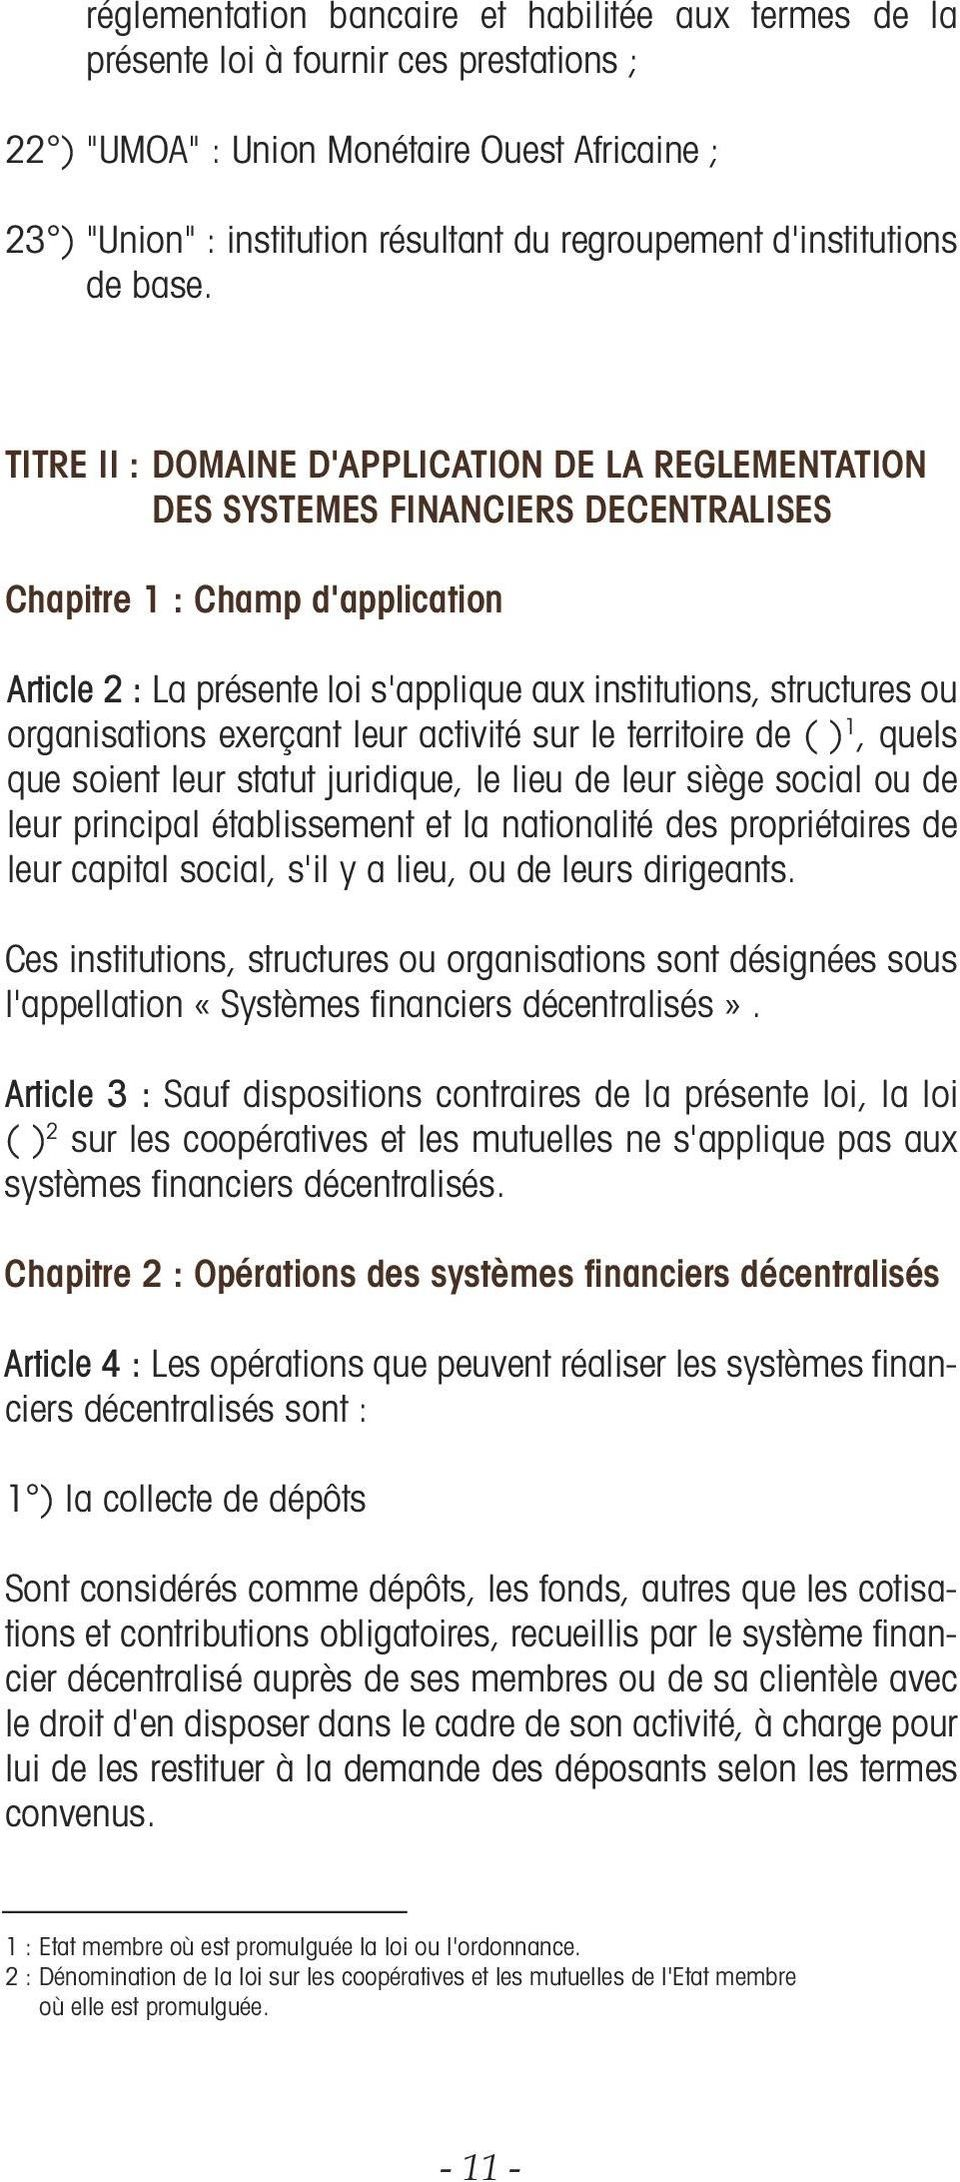 TITRE II : DOMAINE D'APPLICATION DE LA REGLEMENTATION DES SYSTEMES FINANCIERS DECENTRALISES Chapitre 1 : Champ d'application Article 2 : La présente loi s'applique aux institutions, structures ou